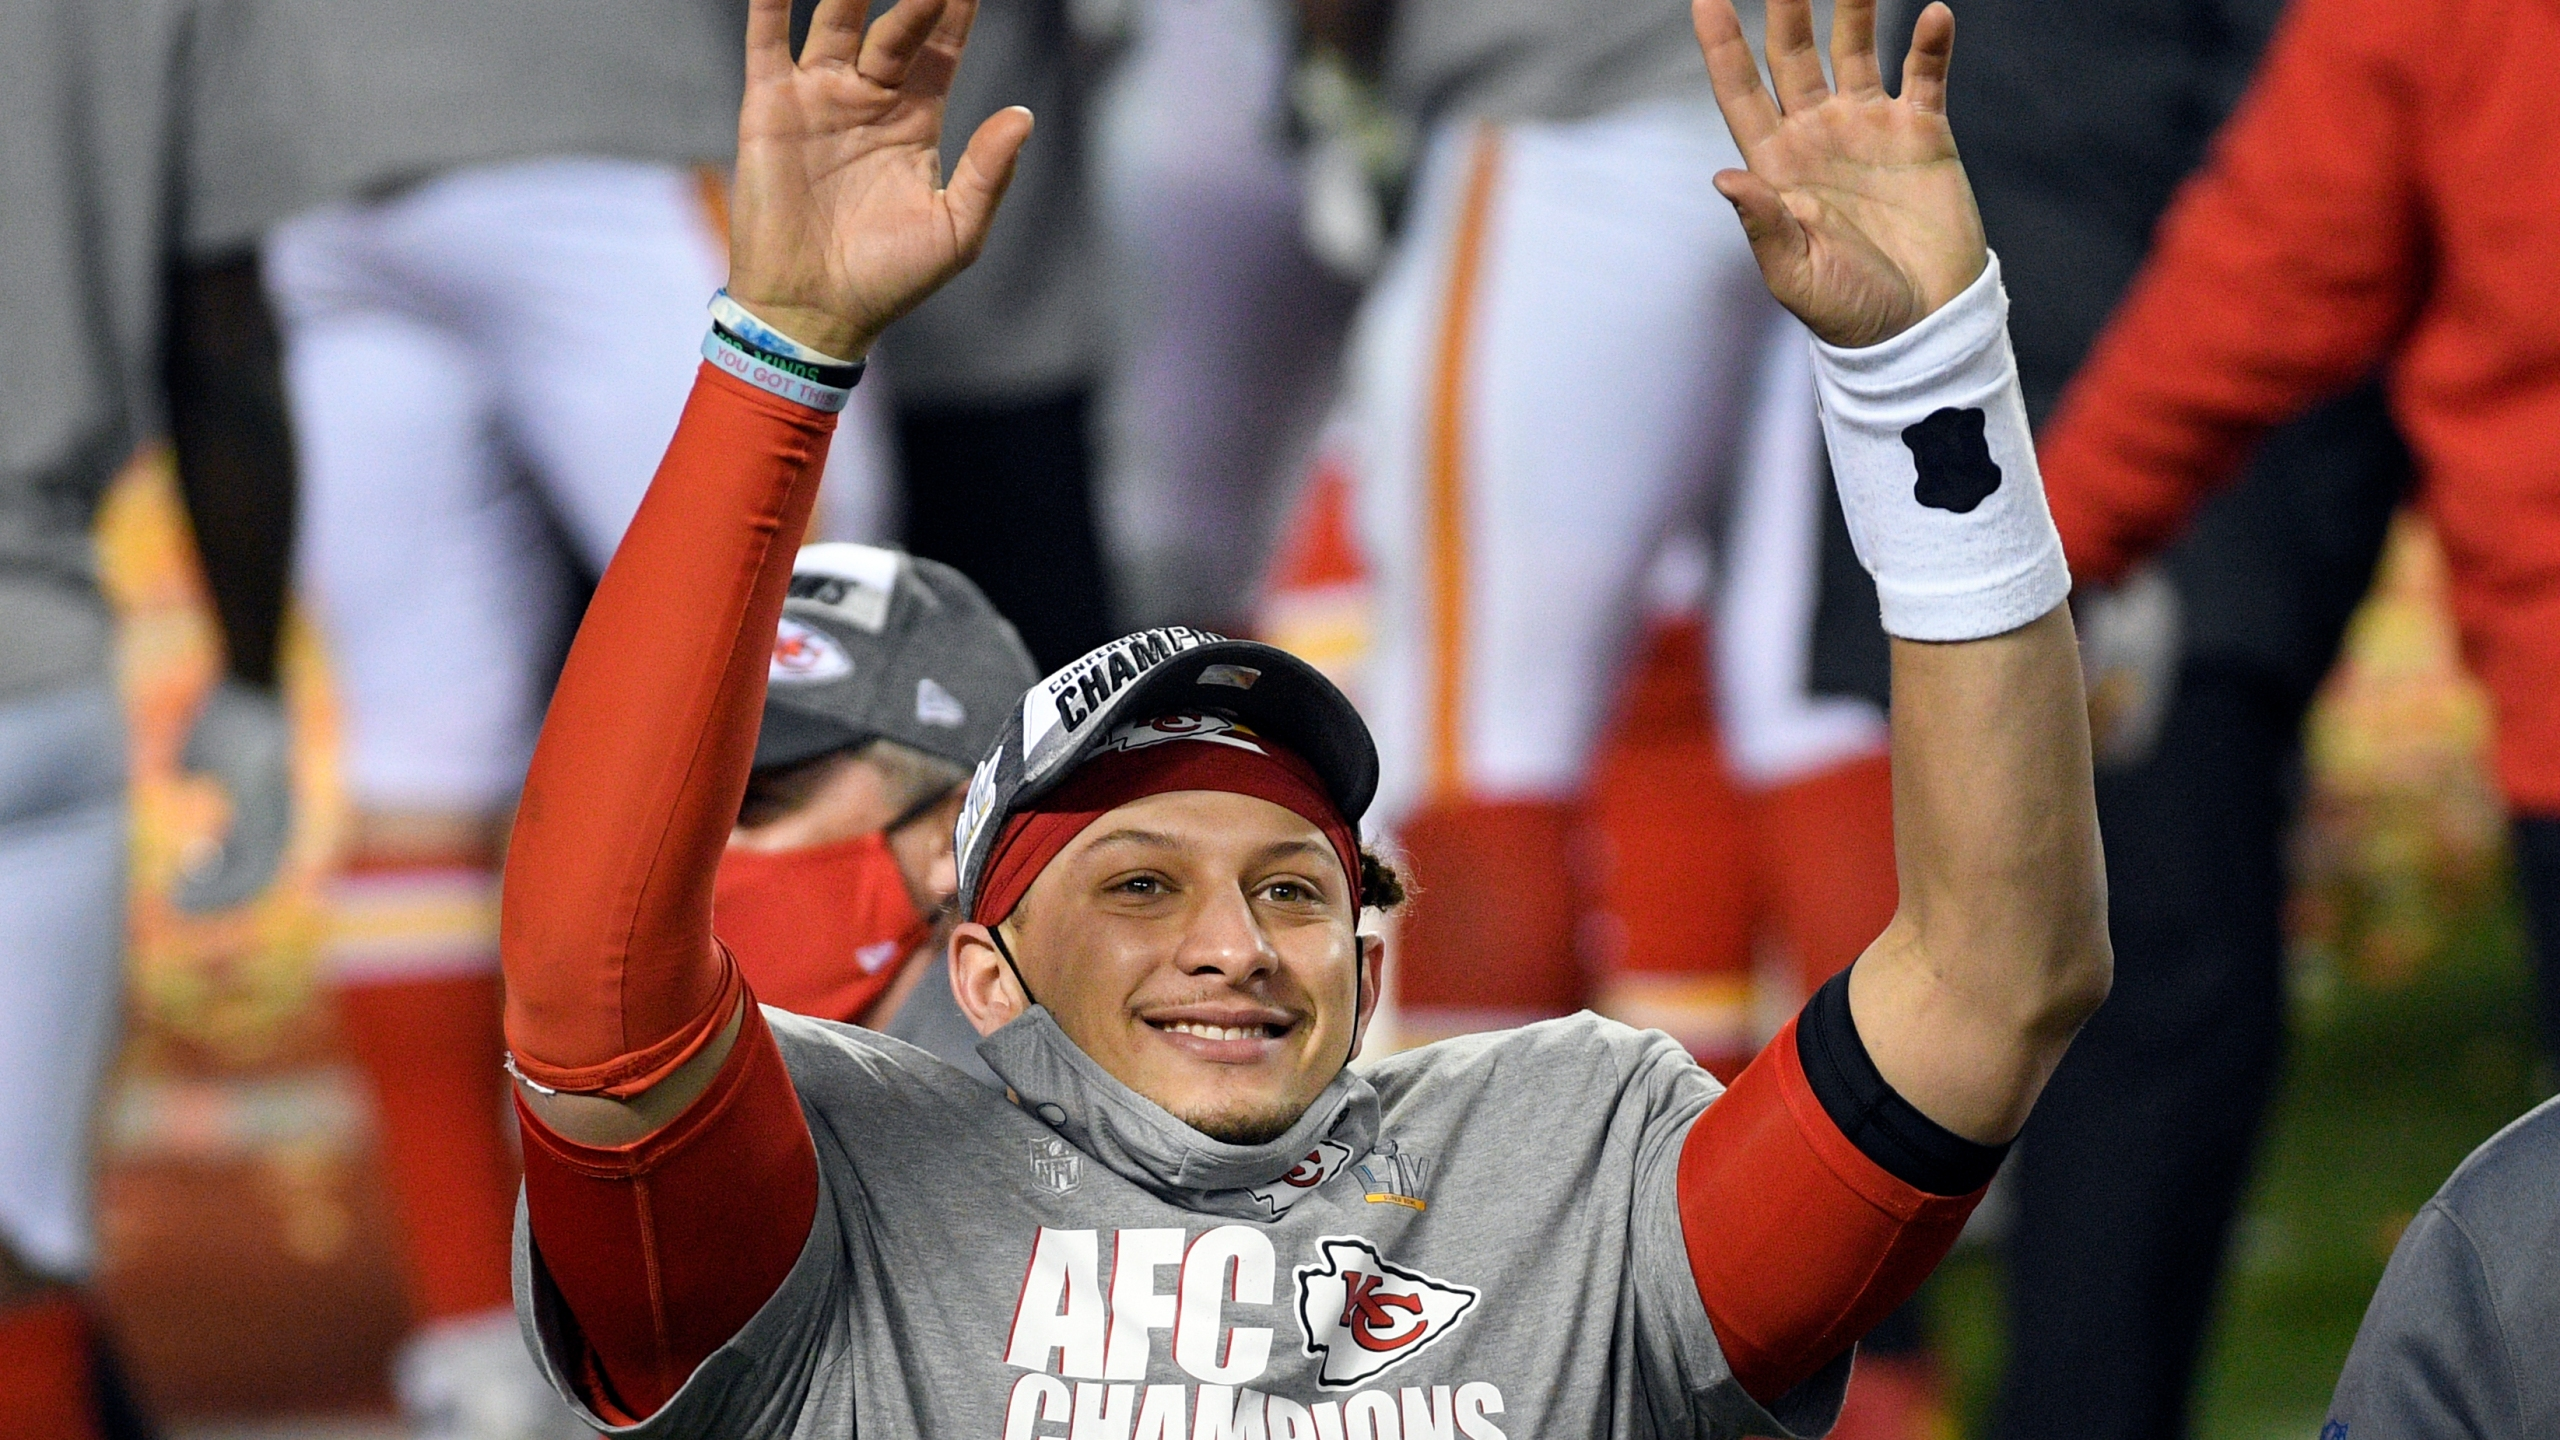 Kansas City Chiefs quarterback Patrick Mahomes celebrates after the AFC championship NFL football game against the Buffalo Bills, Sunday, Jan. 24, 2021, in Kansas City, Mo. The Chiefs won 38-24. (AP Photo/Reed Hoffmann)